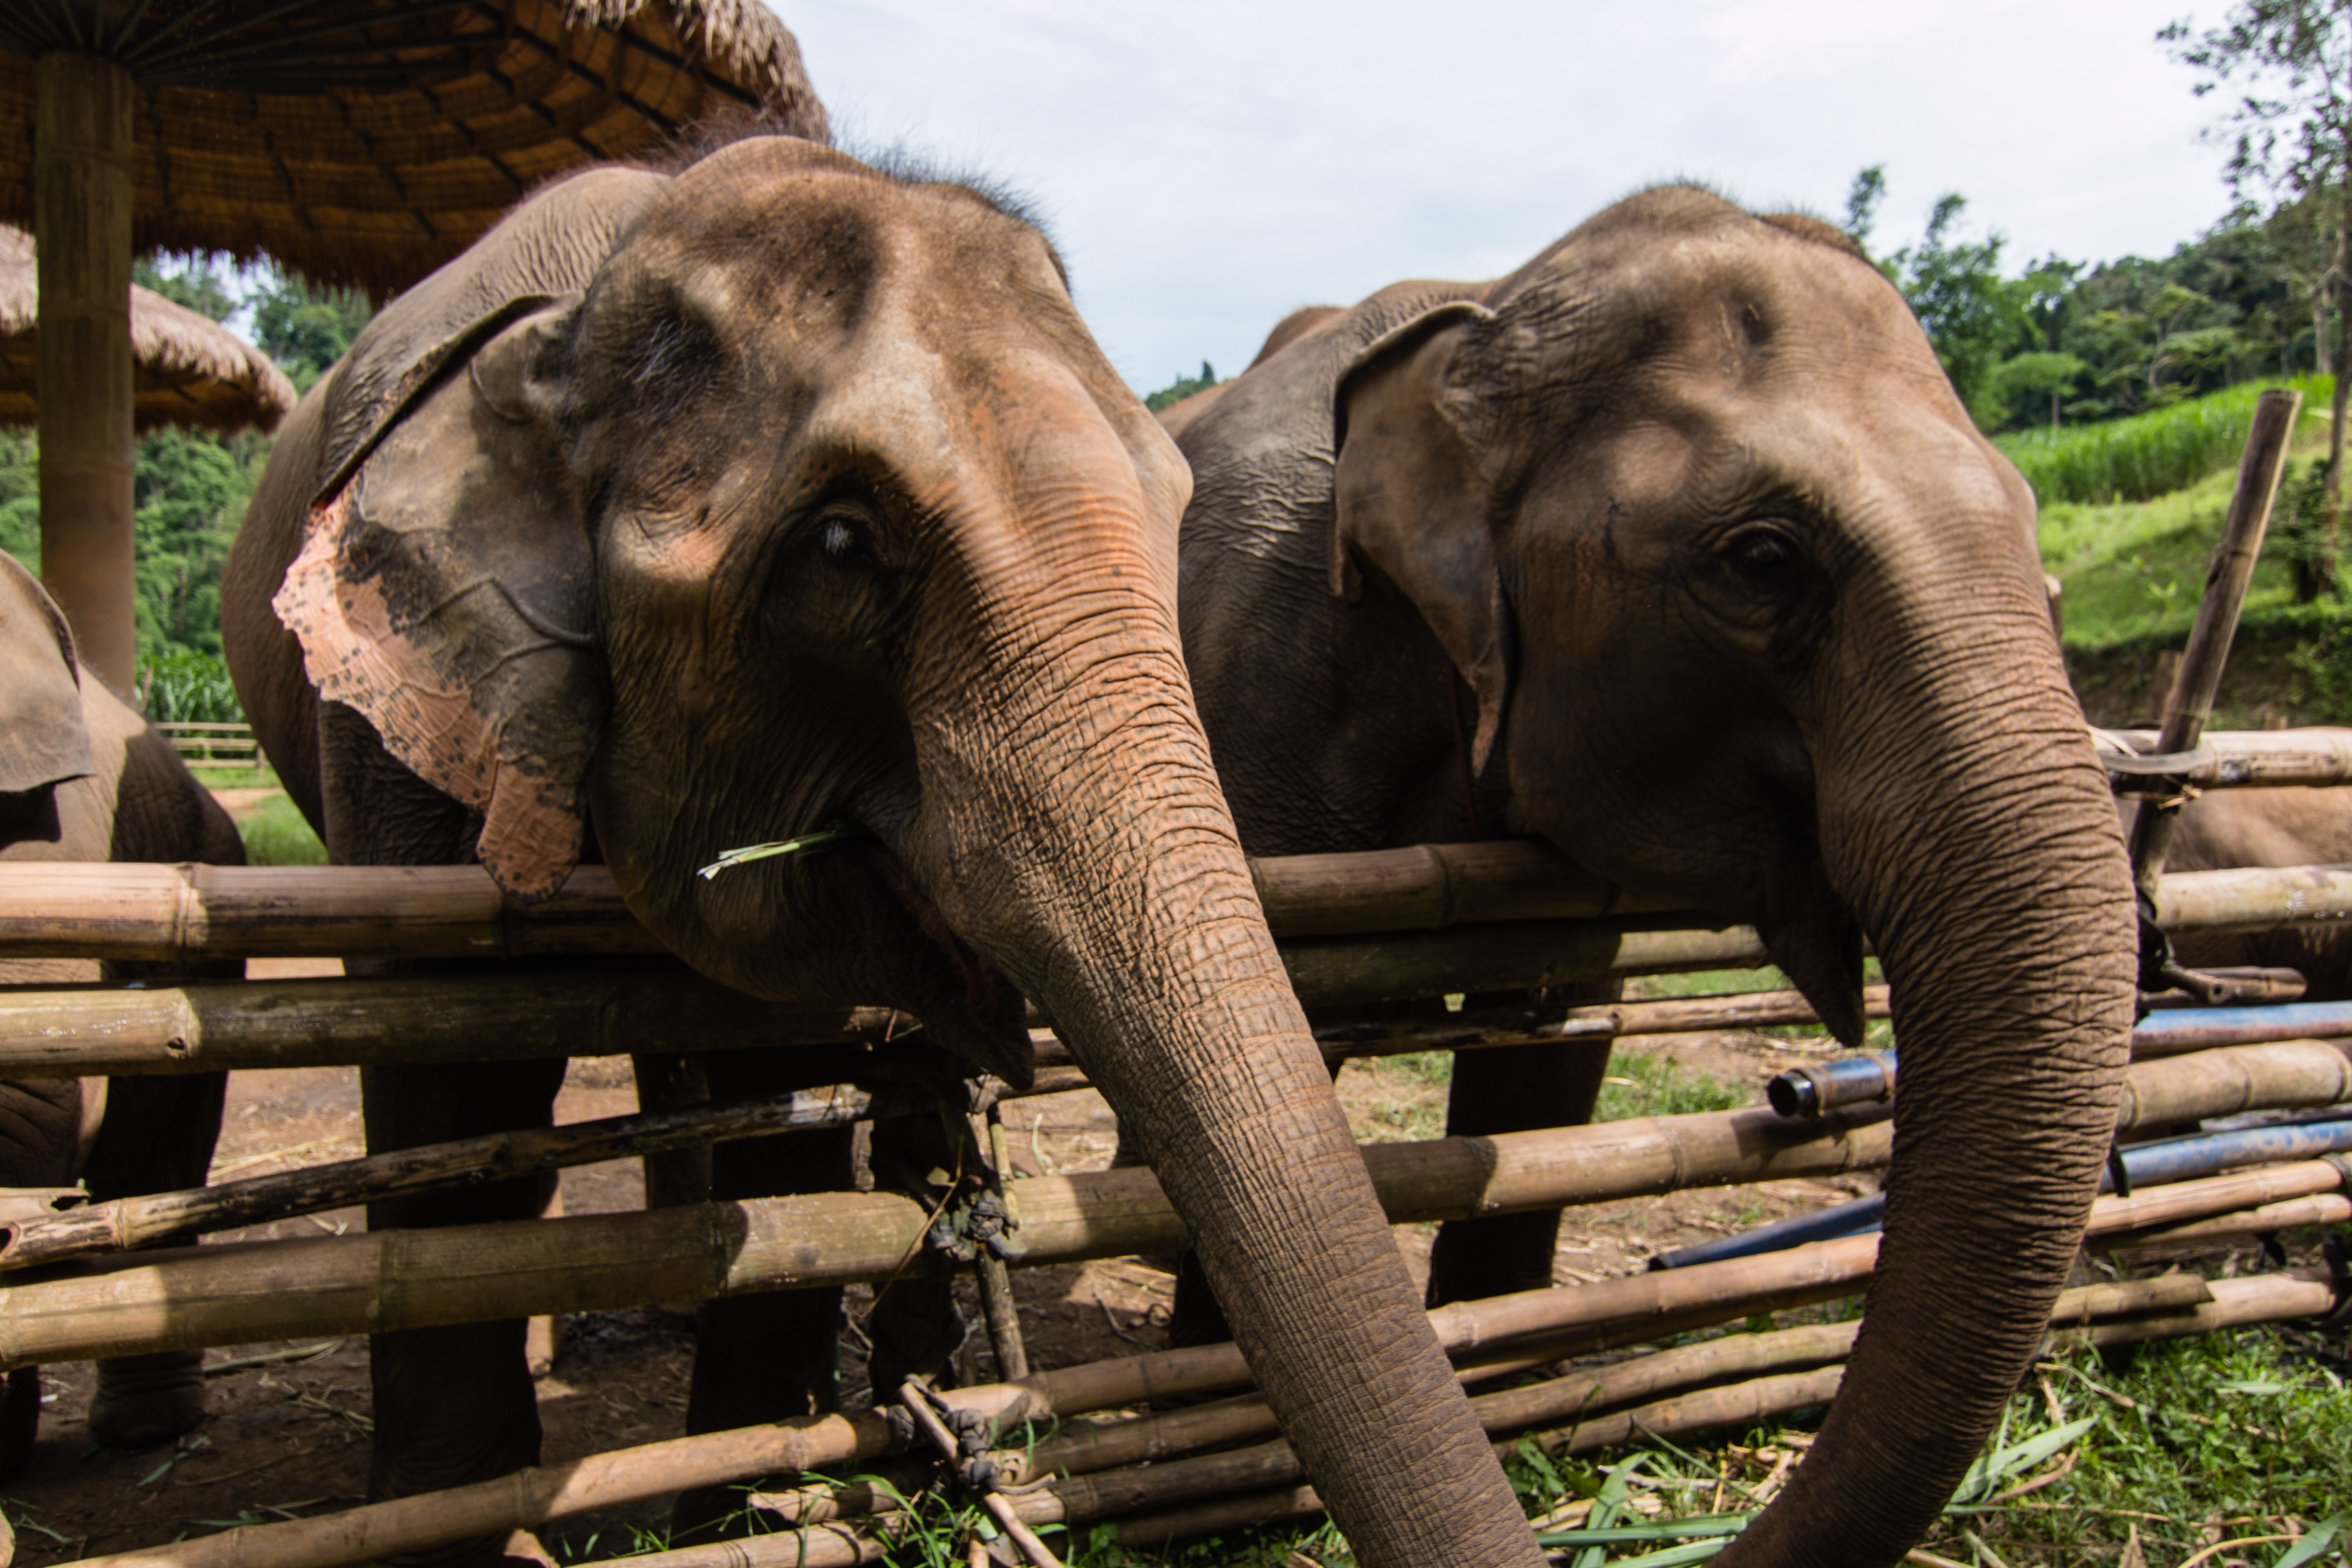 Full Day Elephant Tour with Loolu Tours - Travel Review ...  Full Day Elepha...